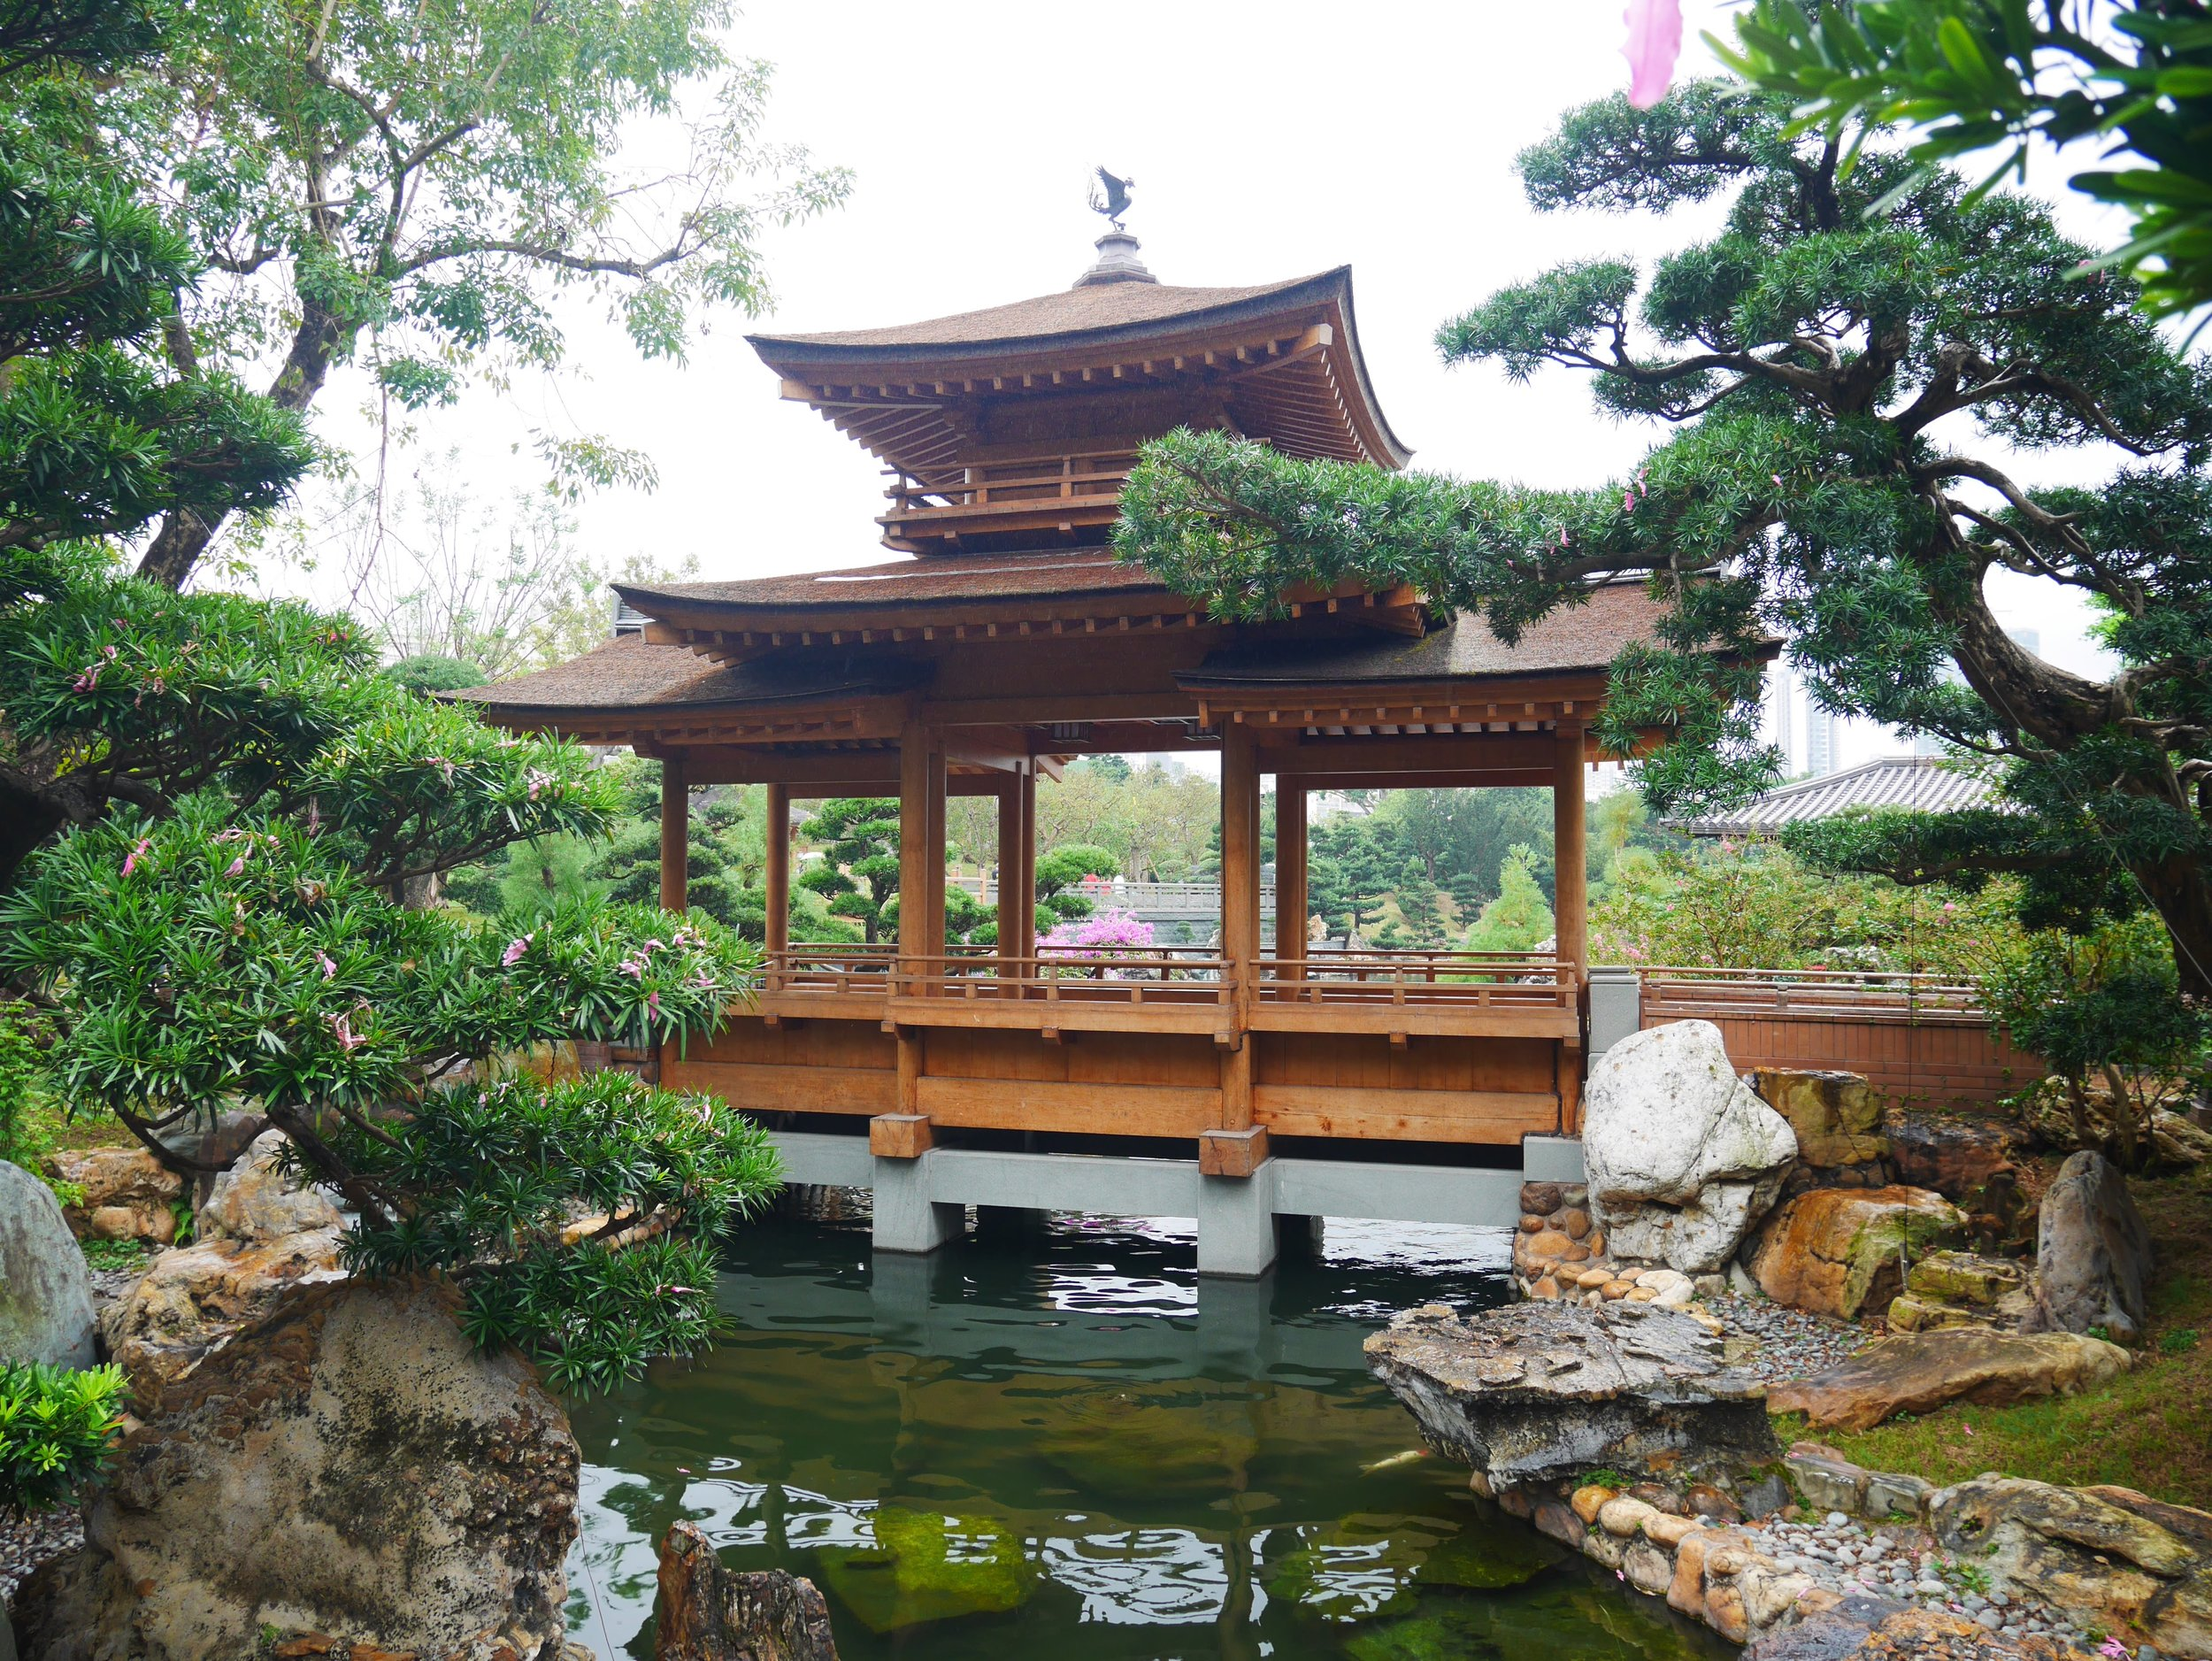 If you are interested in Chinese art or culture, or just want to escape the crowds of busy Hong Kong, the Nan Lian Garden is a beautiful place to visit.